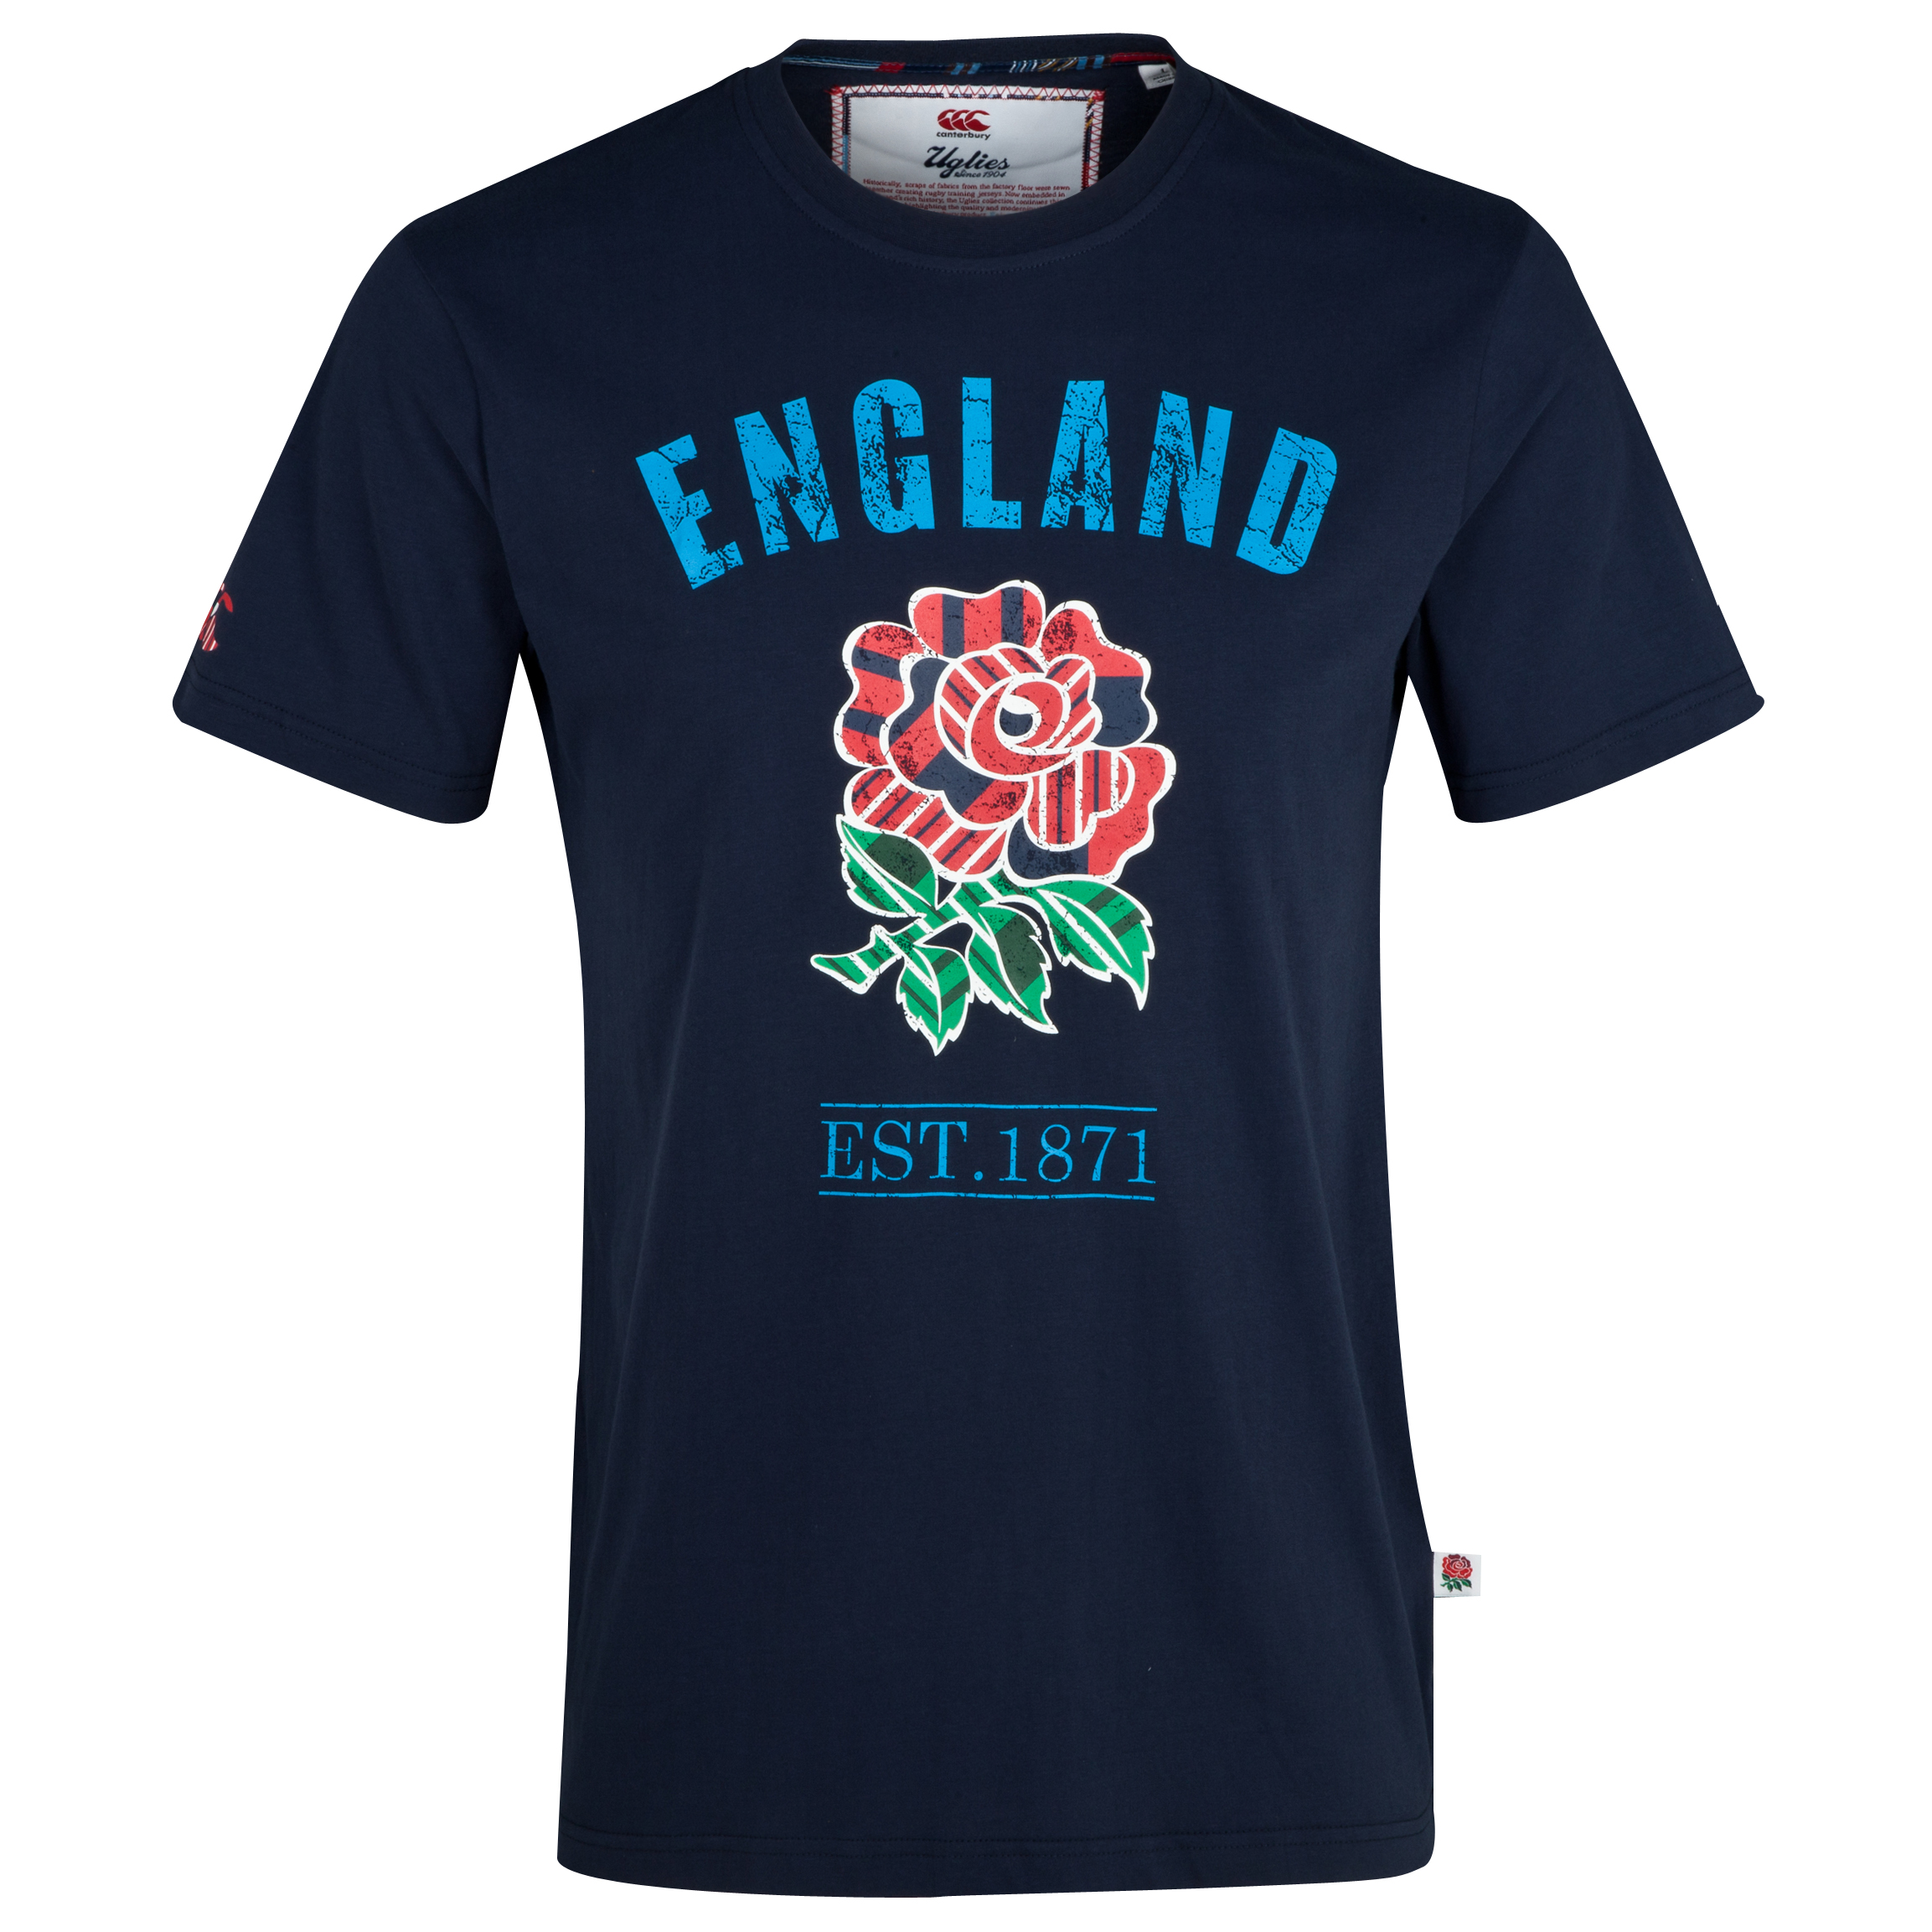 England Uglies Cotton T-Shirt - Navy Navy